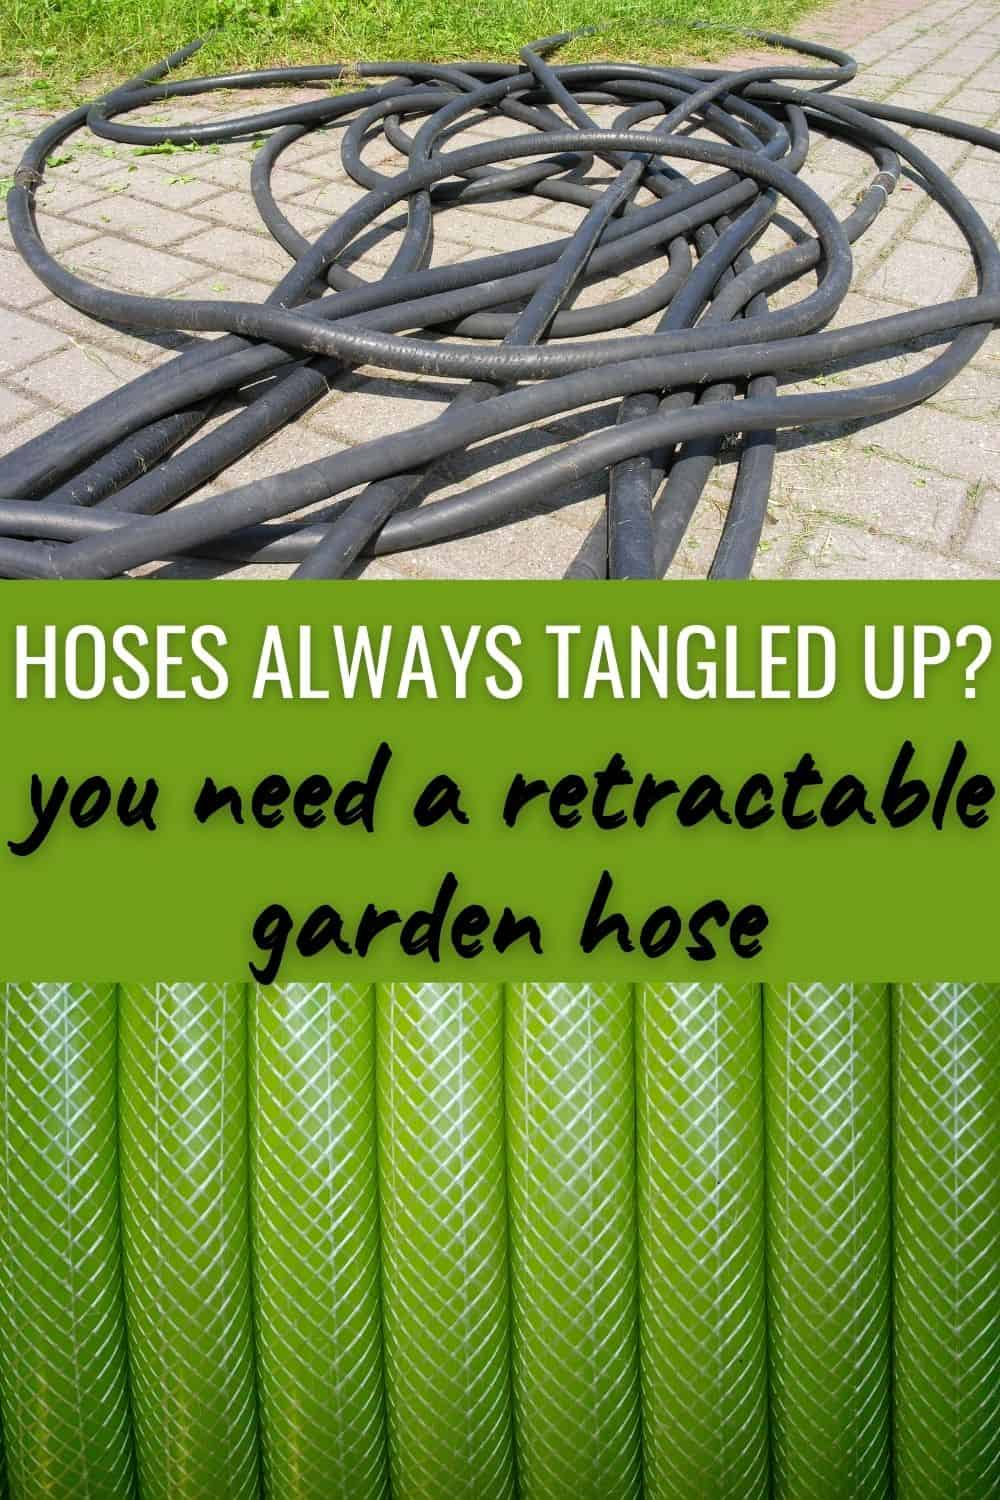 Hoses always tangled up? You need a retractable garden hose